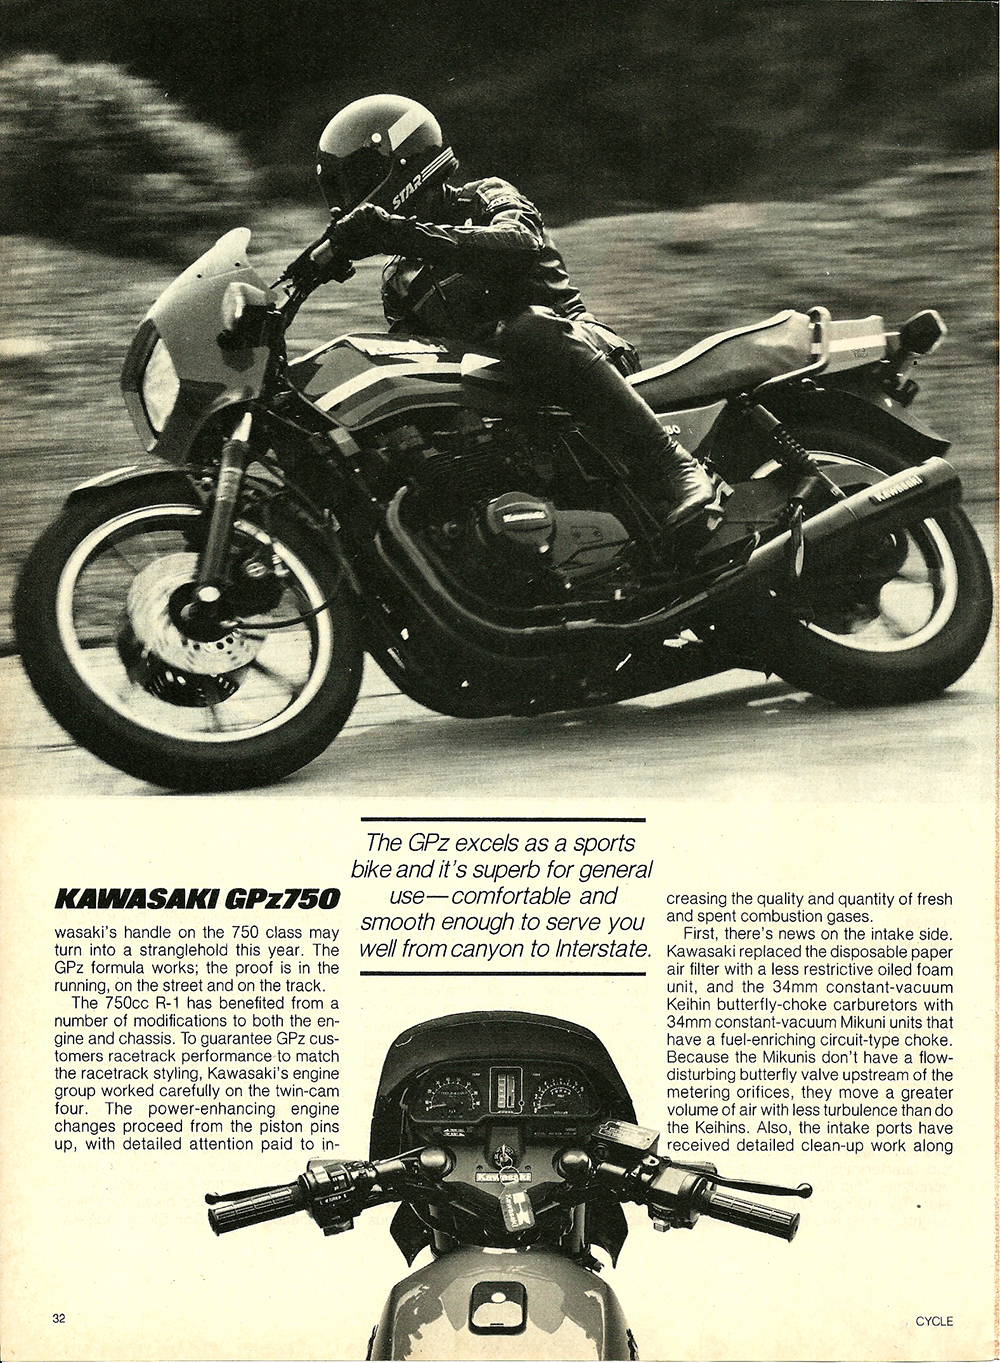 1982 Kawasaki Gpz750 road test 03.jpg